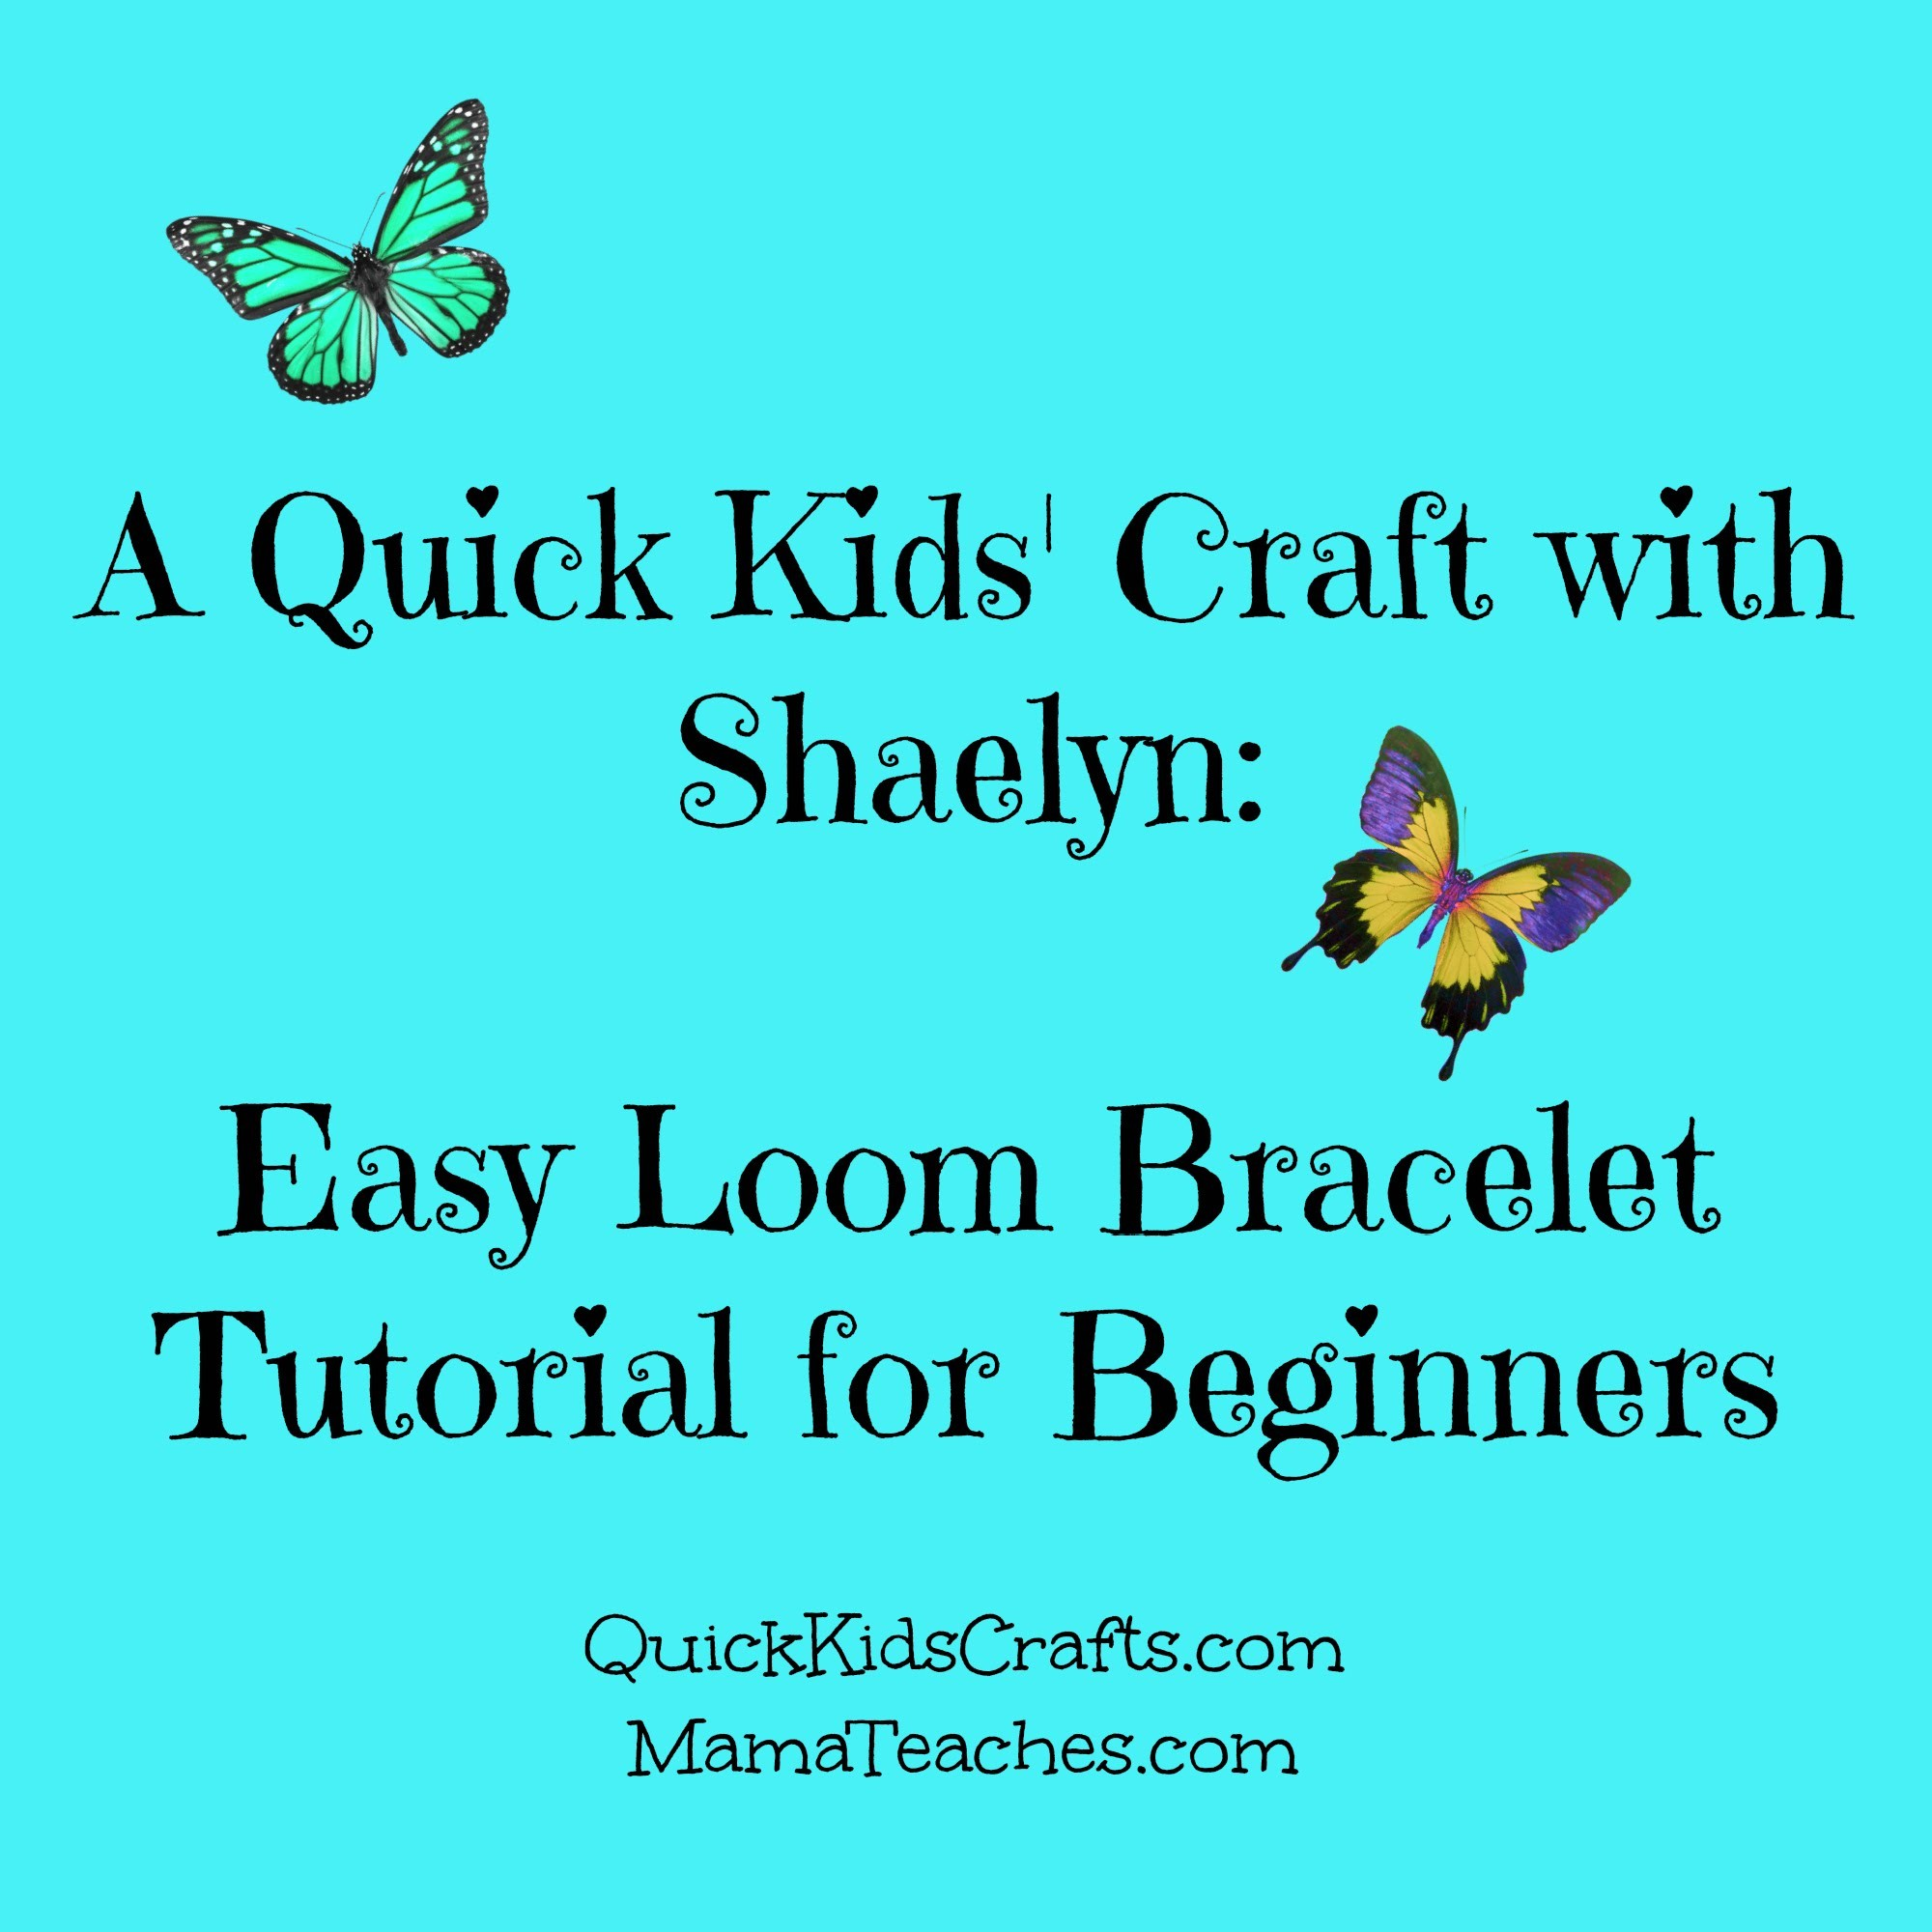 Easy Loom Bracelet Tutorial for Beginners